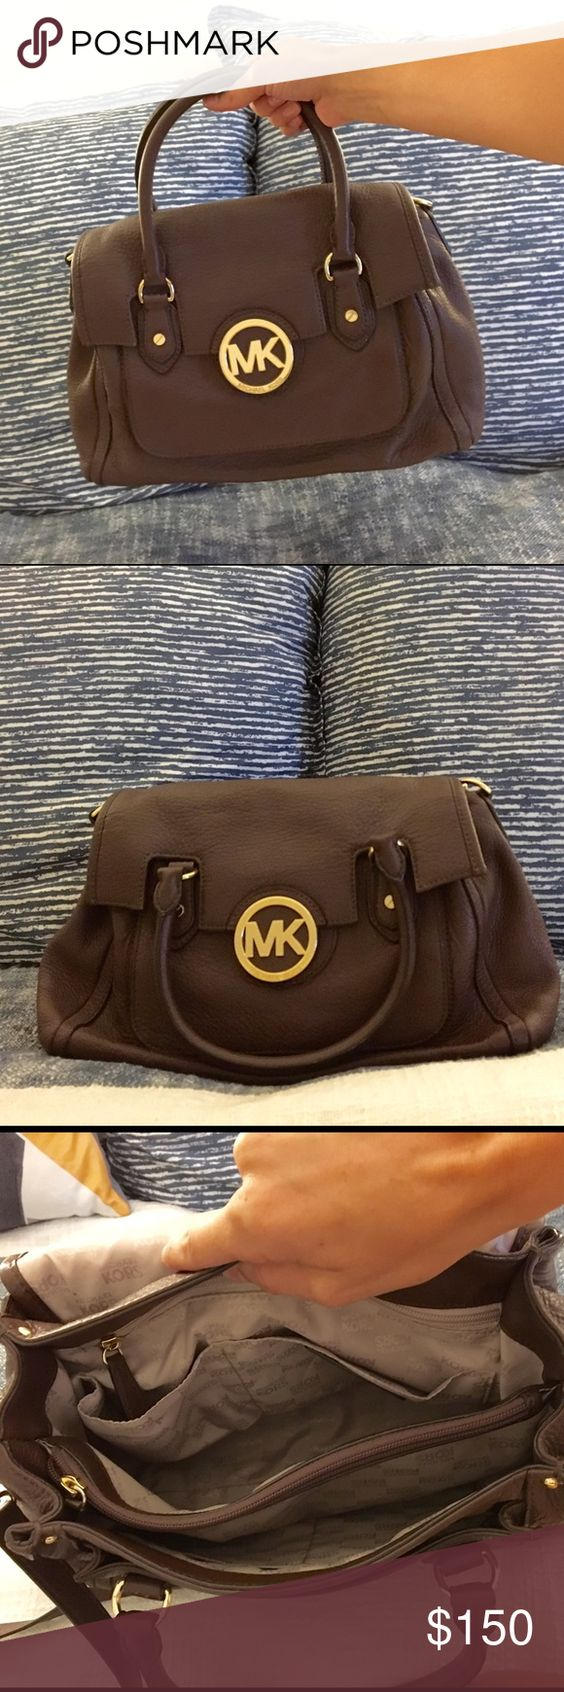 MICHAEL KORS Chocolate Shoulder/Tote Bag!! Amazing condition, only used a few times last season. Small signs of wear but nothing significant. Interior has 3 sections, middle is zippered. Side pockets and outer pocket in back. Comes with tote straps and detachable shoulder strap. No stains! Michael Kors Bags Shoulder Bags